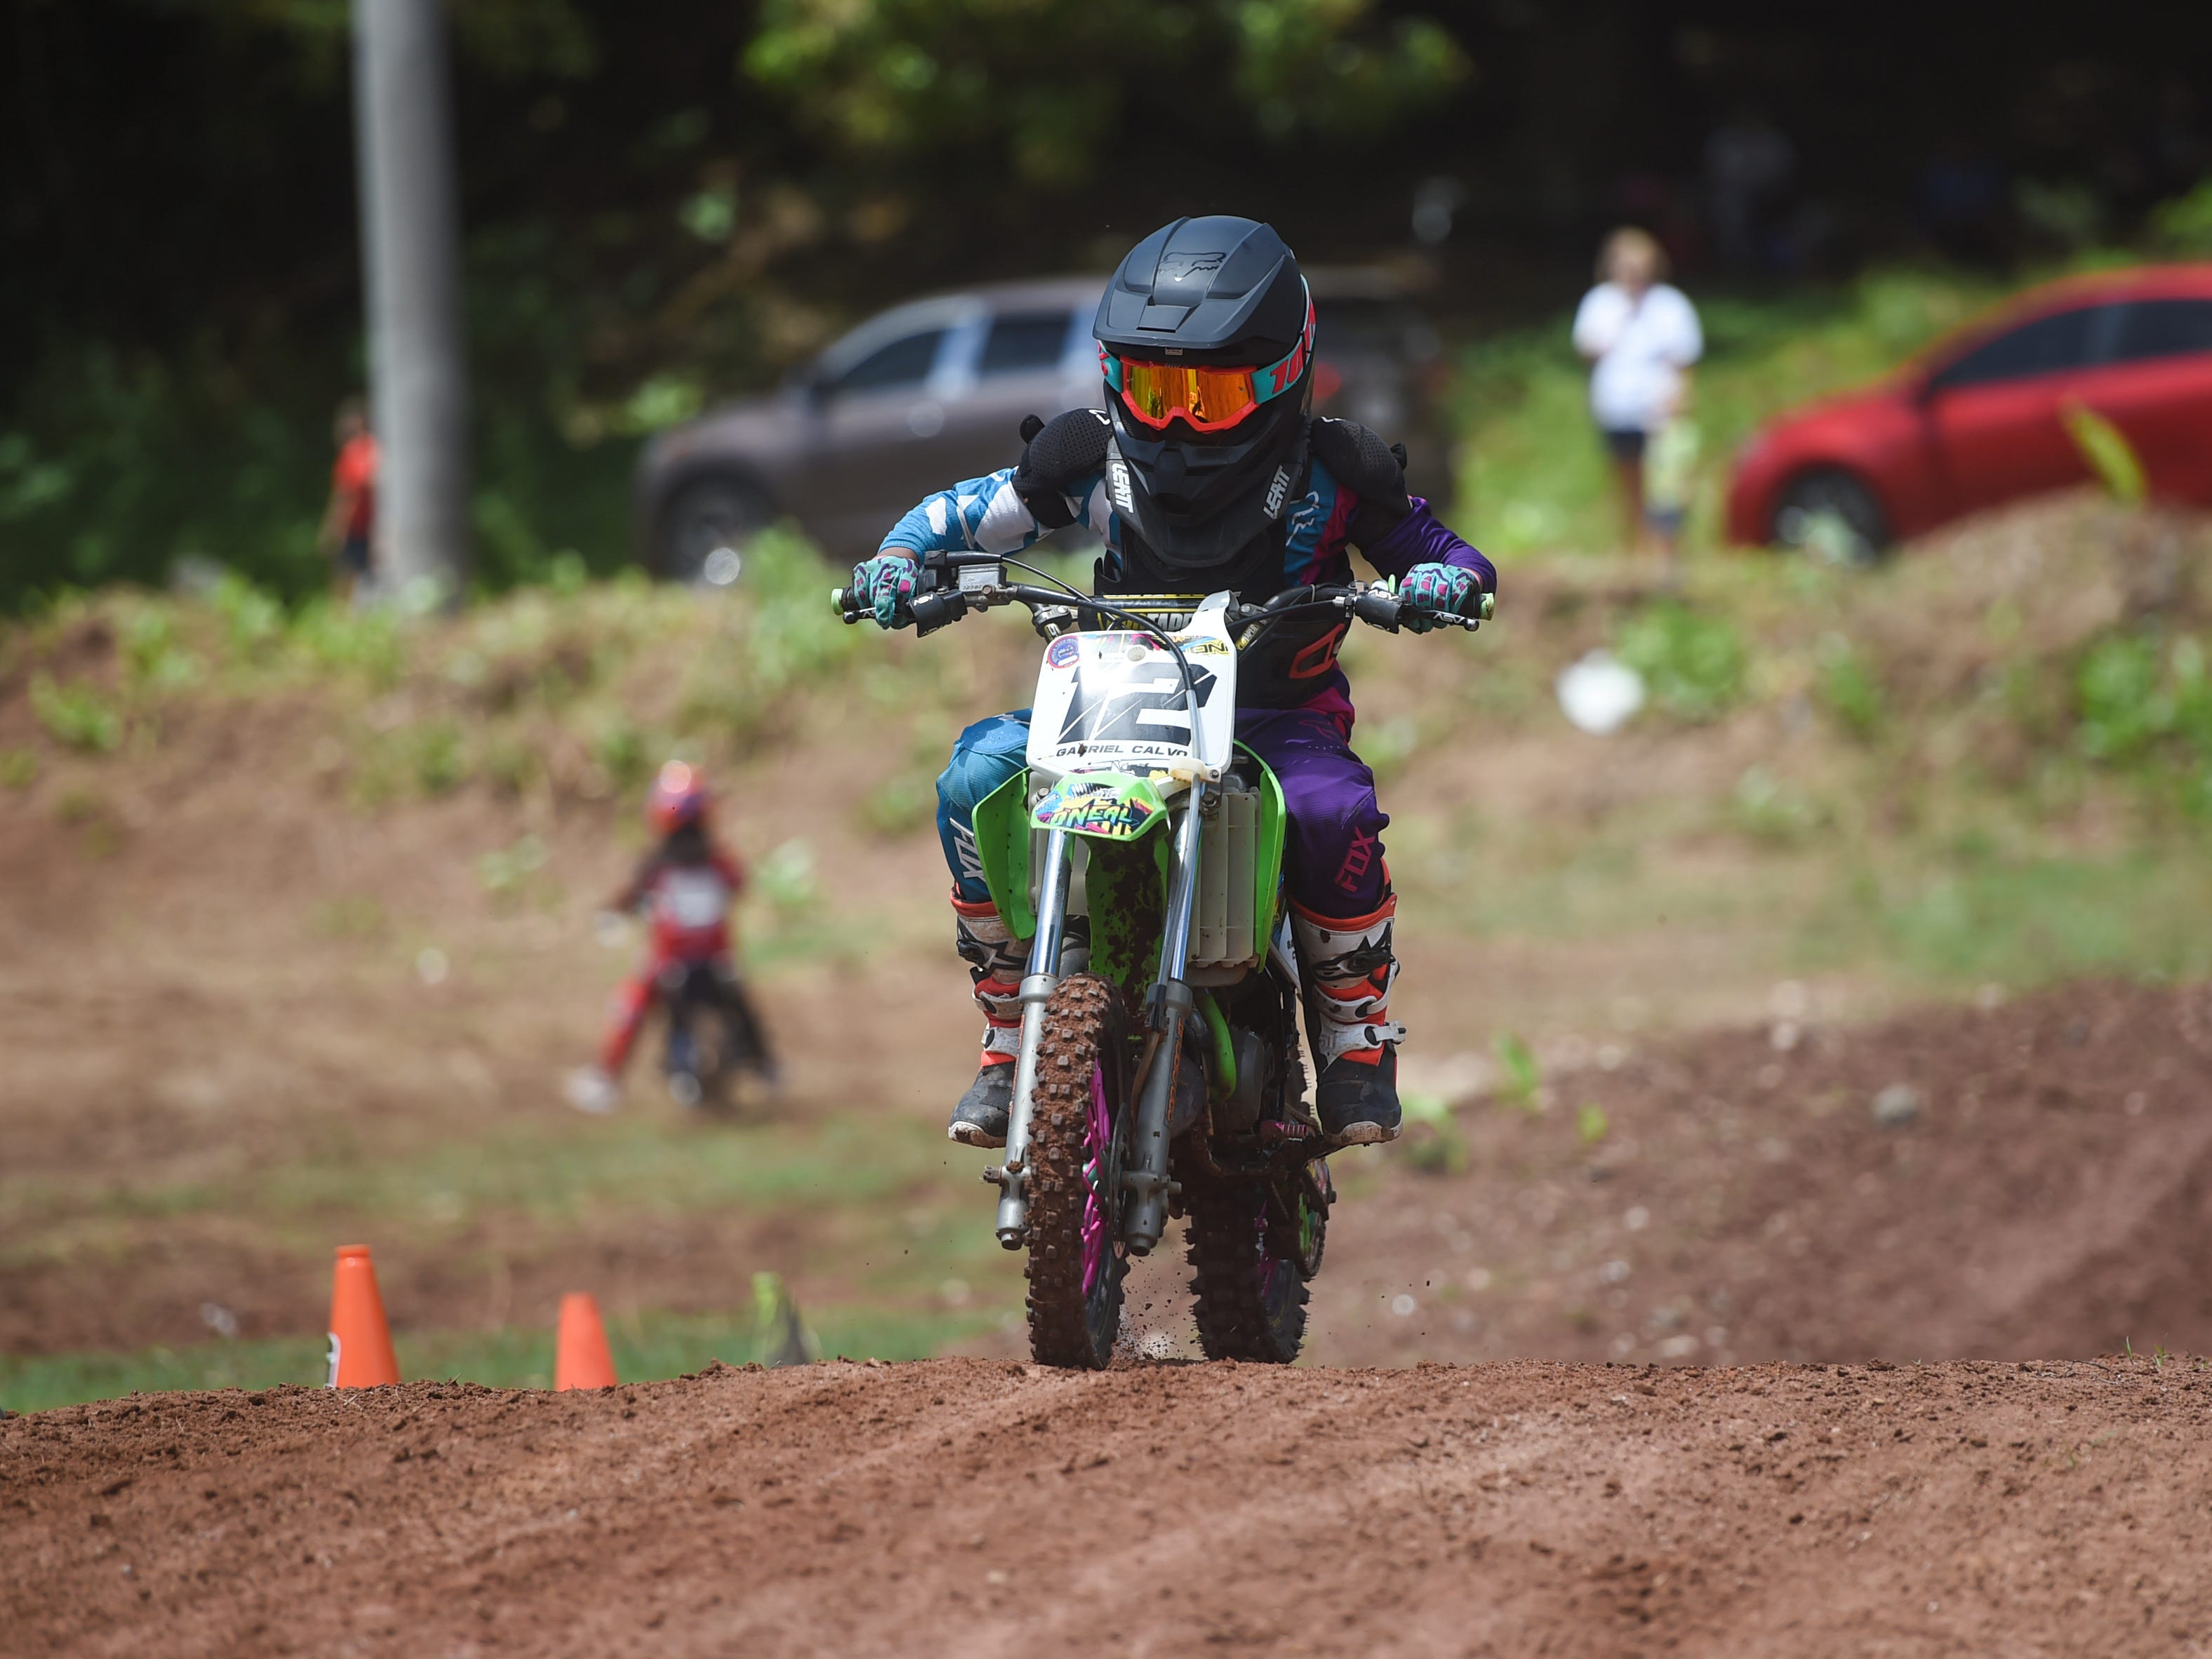 Motocross competitors compete in races during the Guam History and Chamorro Heritage Day Festival 2019 at Umatac Bay Park, March 10, 2019.